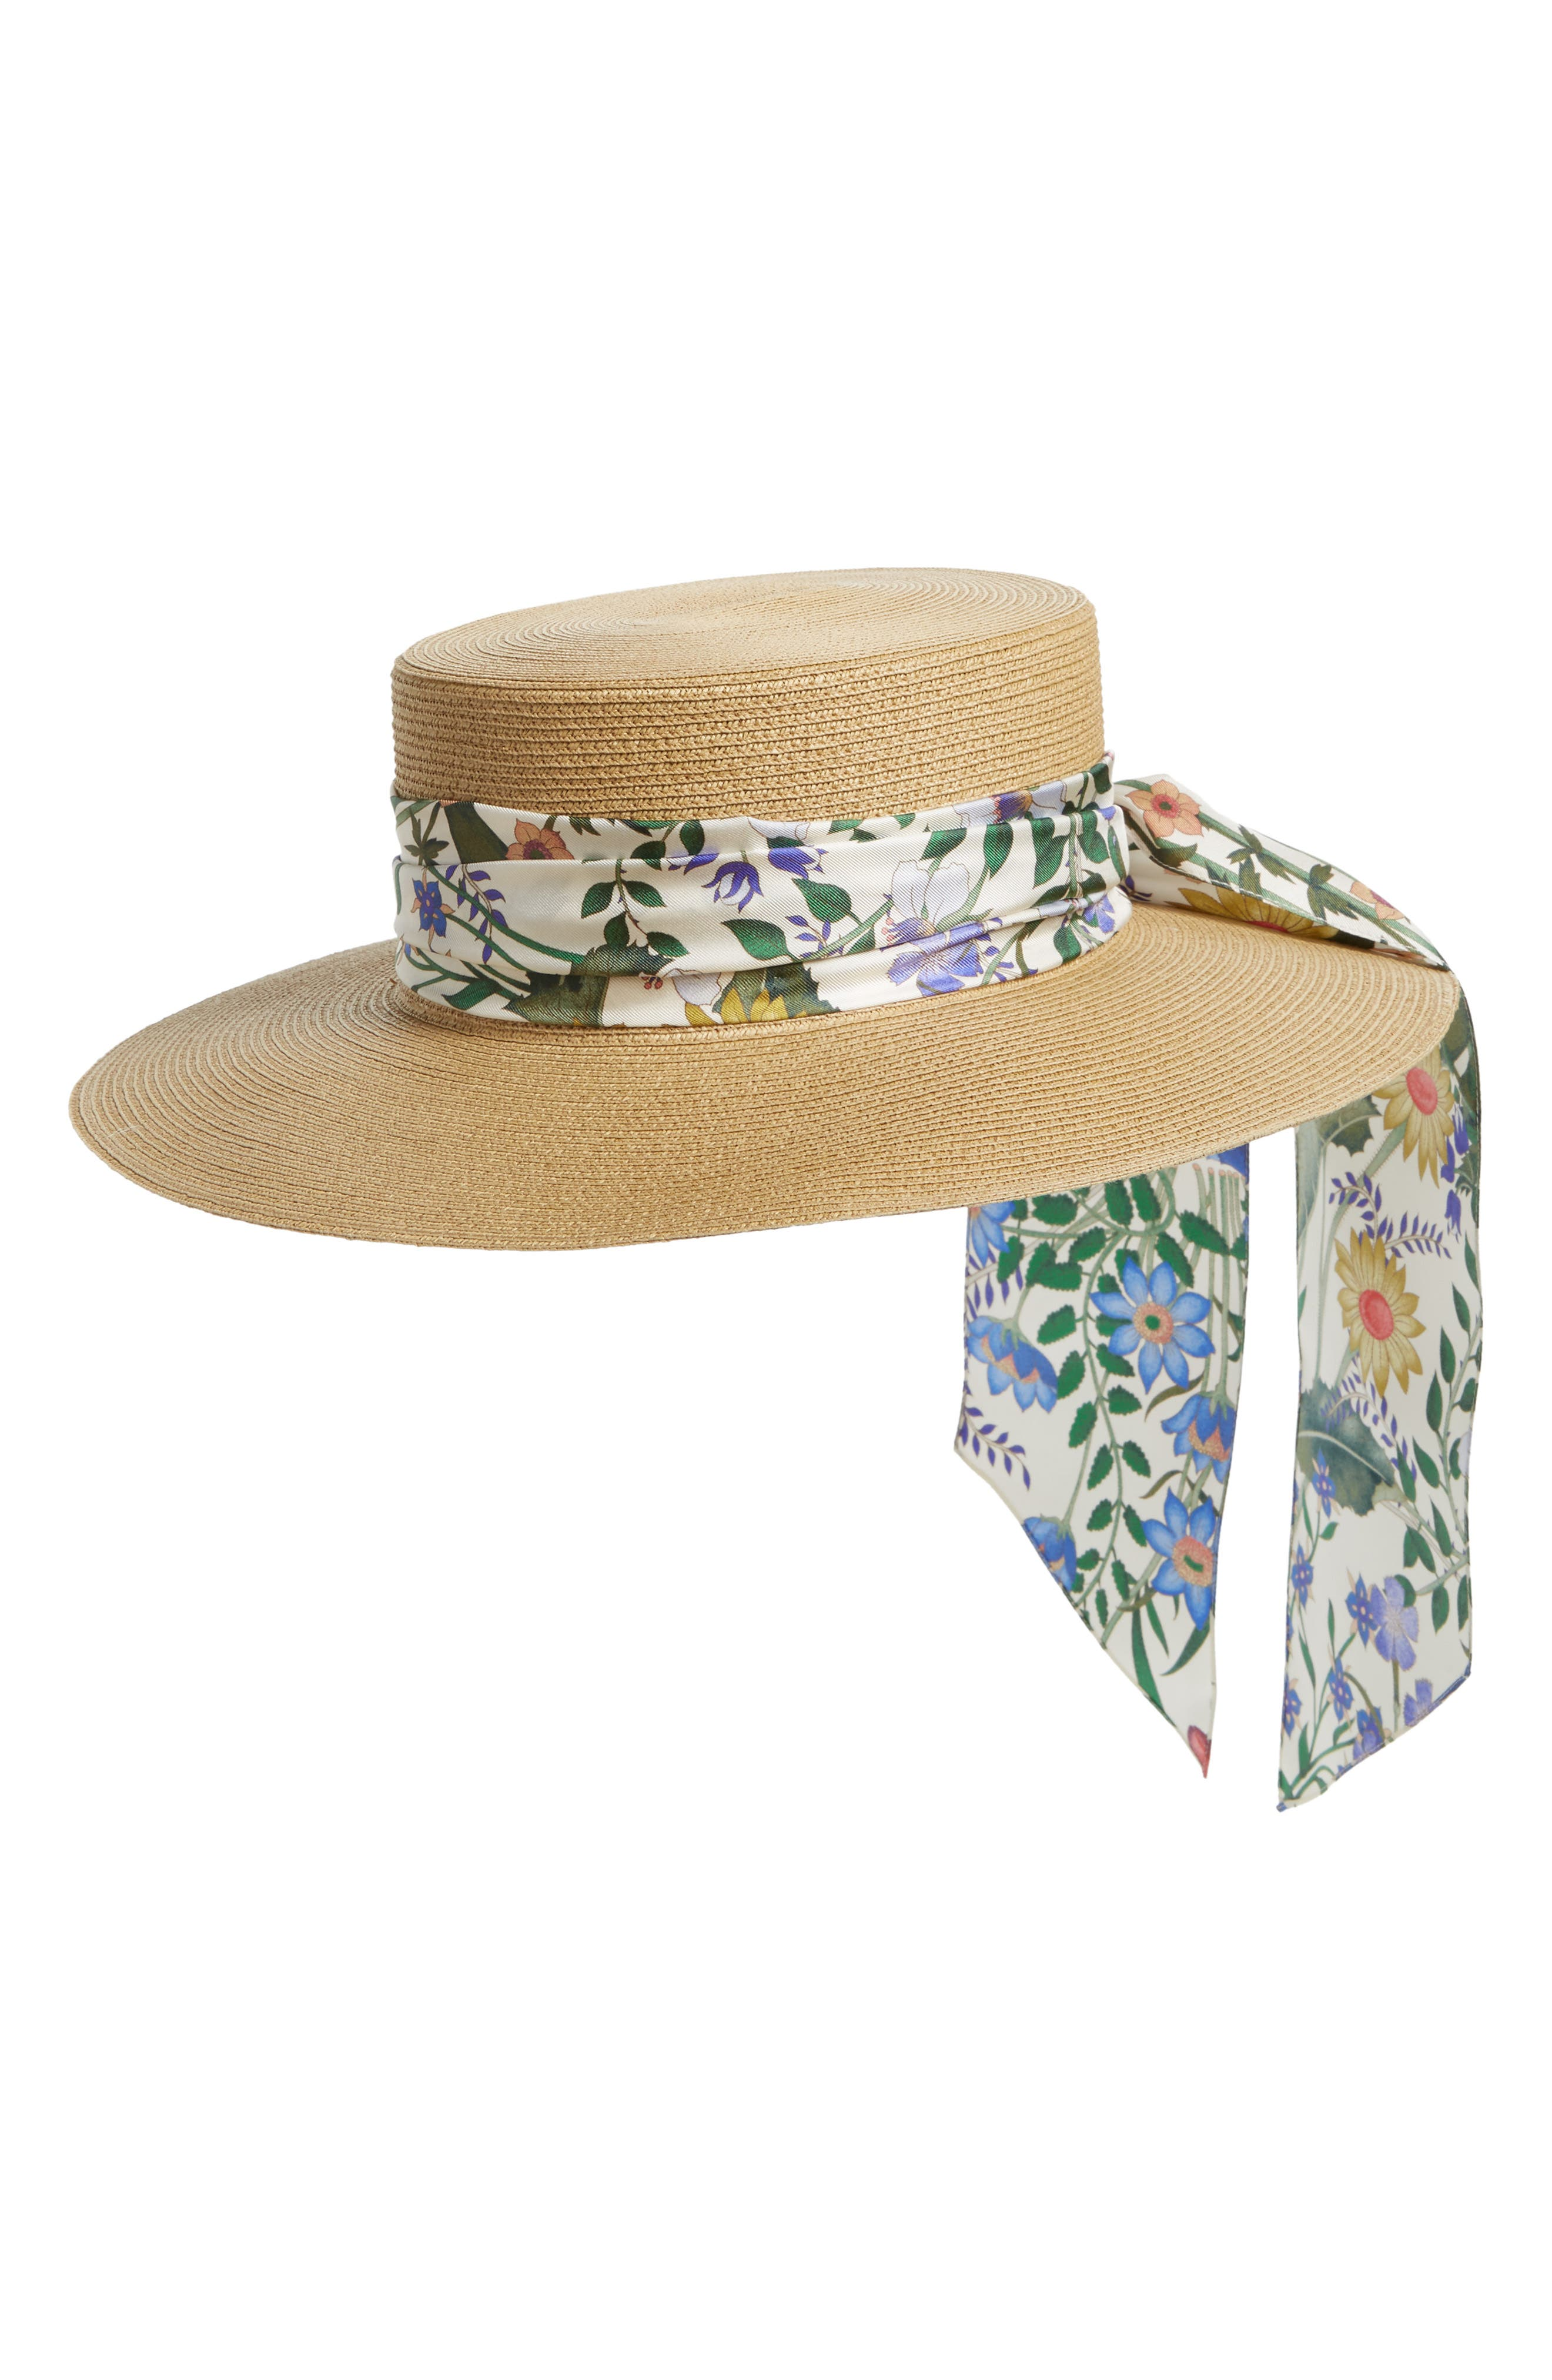 Alba Straw Hat,                             Main thumbnail 1, color,                             ROPE/ WHITE